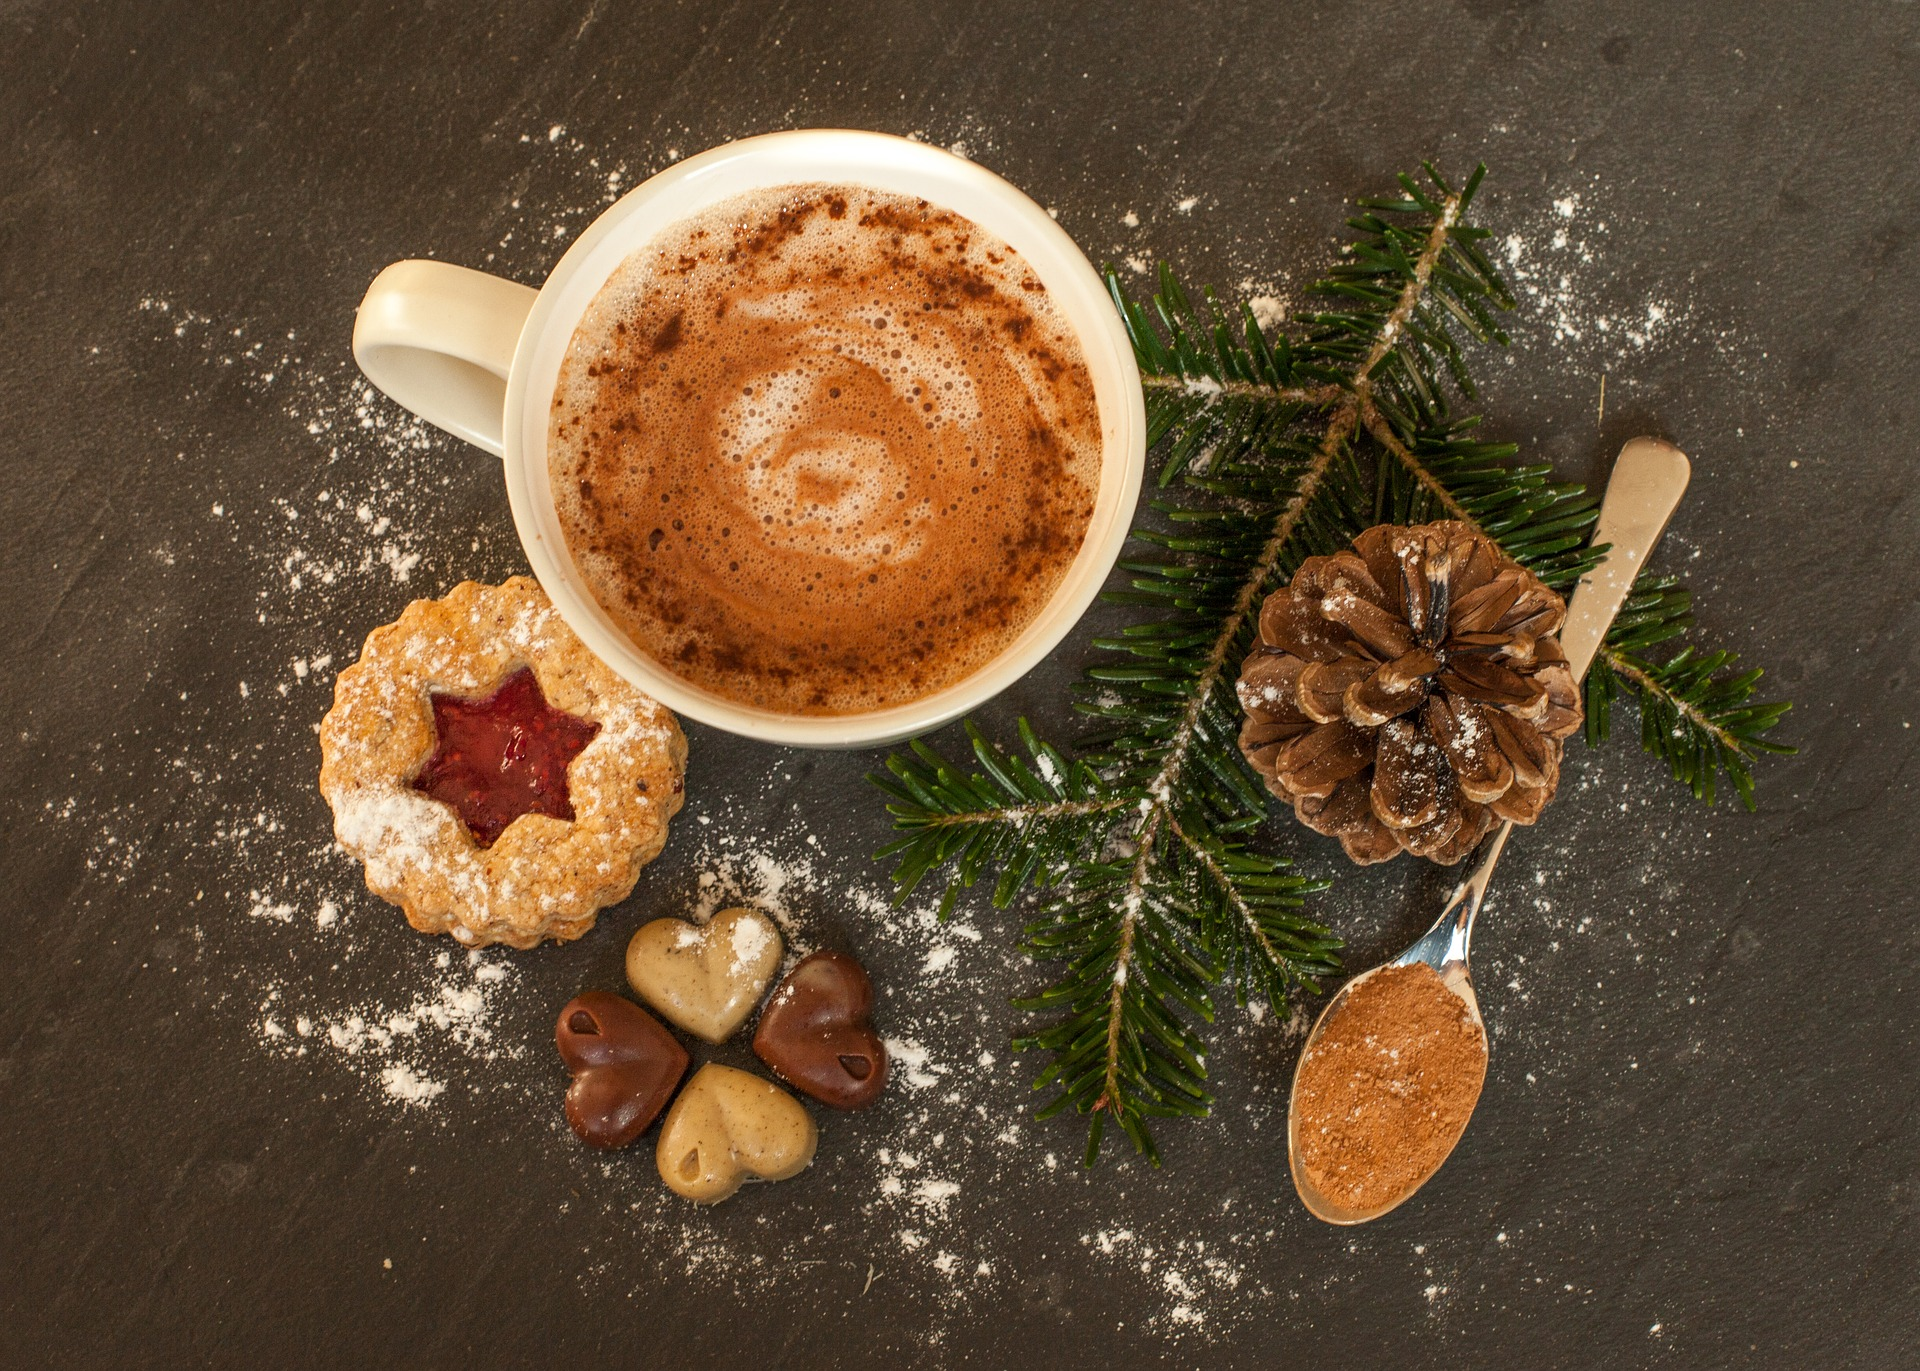 When I drink hot cocoa, this is what it's going to look like. Pine cone, powdered sugar and all.